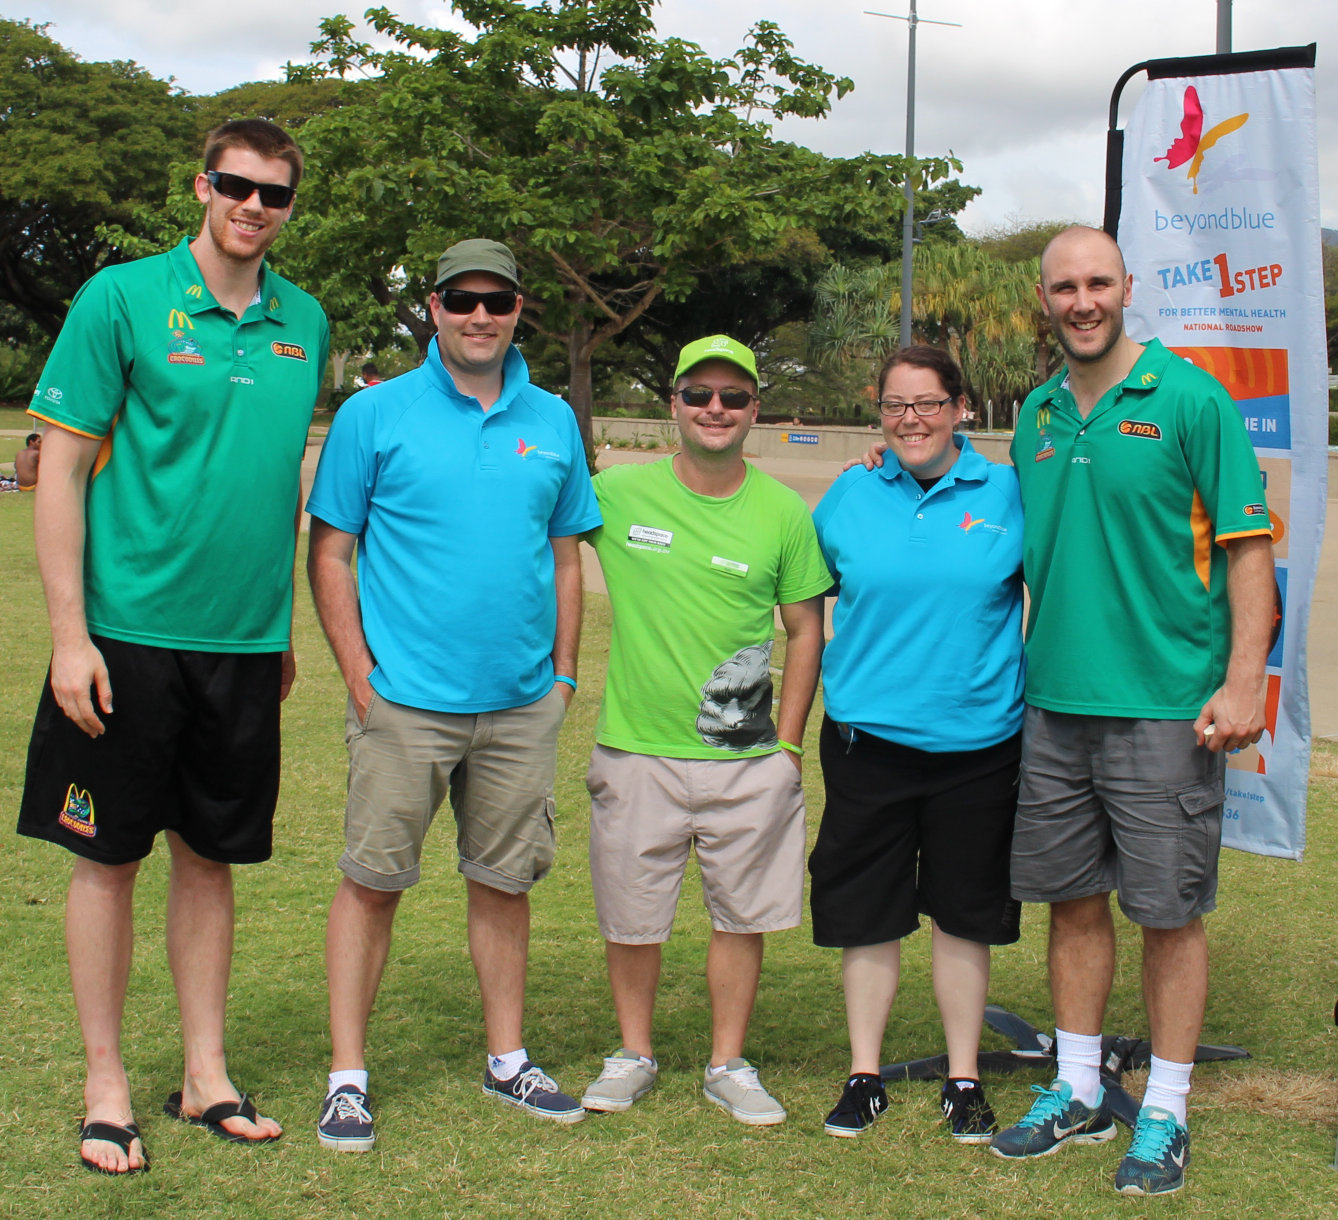 Townsville Crocodiles' Brian Conklin (far left) and Steven Markovic (far right) stopped by to say g'day at the free community barbecue at the Riverway Precinct in Townsville.